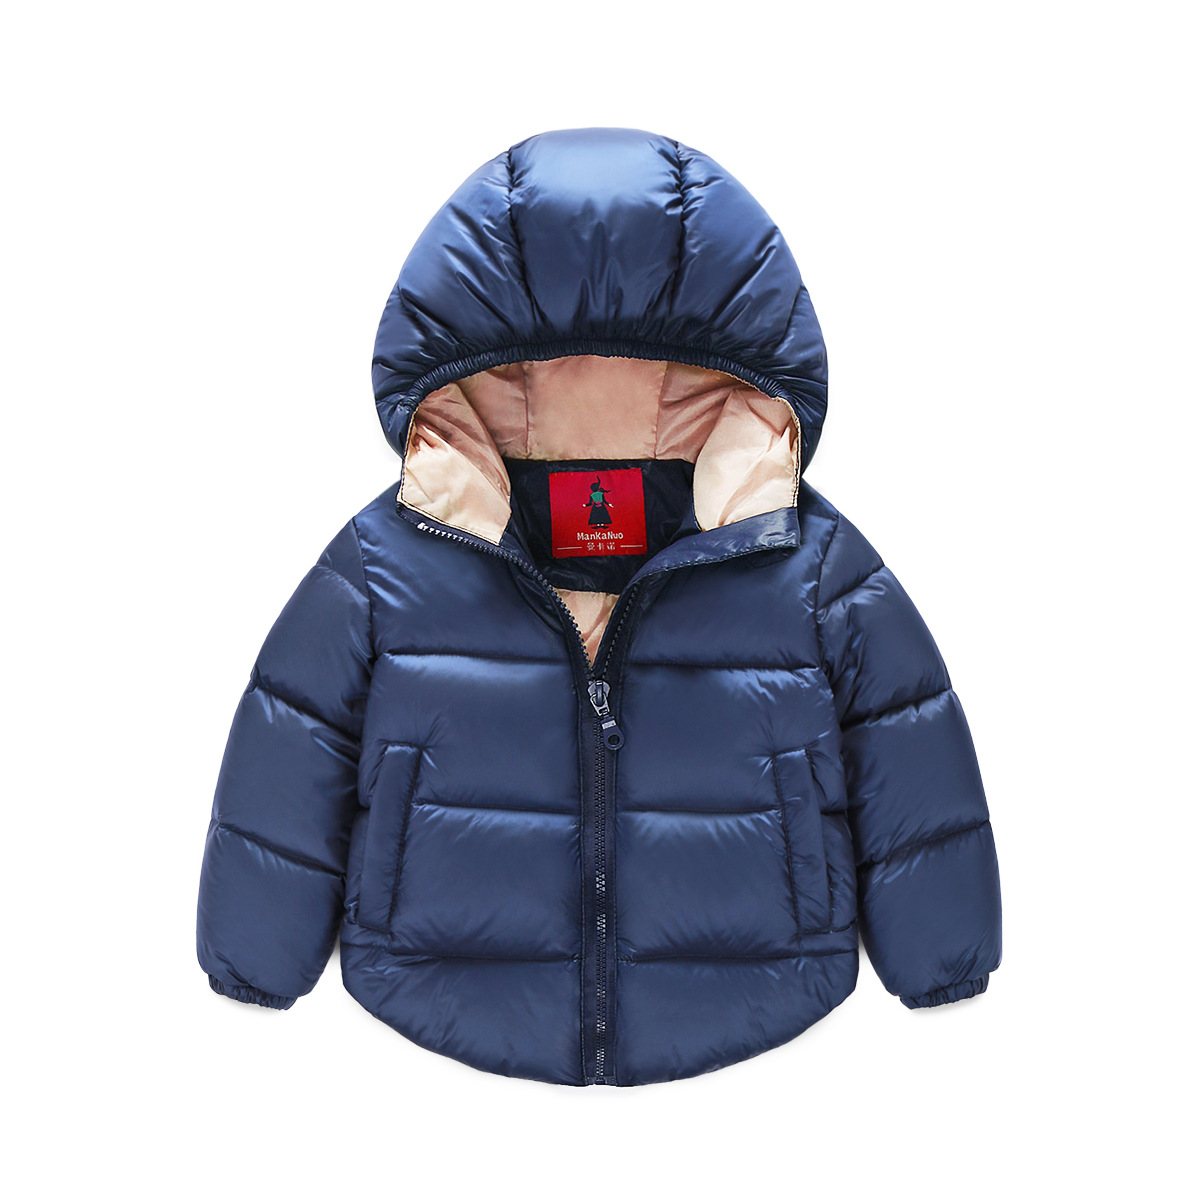 Small and medium sized children in winter new boy and girl small and medium - sized children 's clothing baby warm down jacket